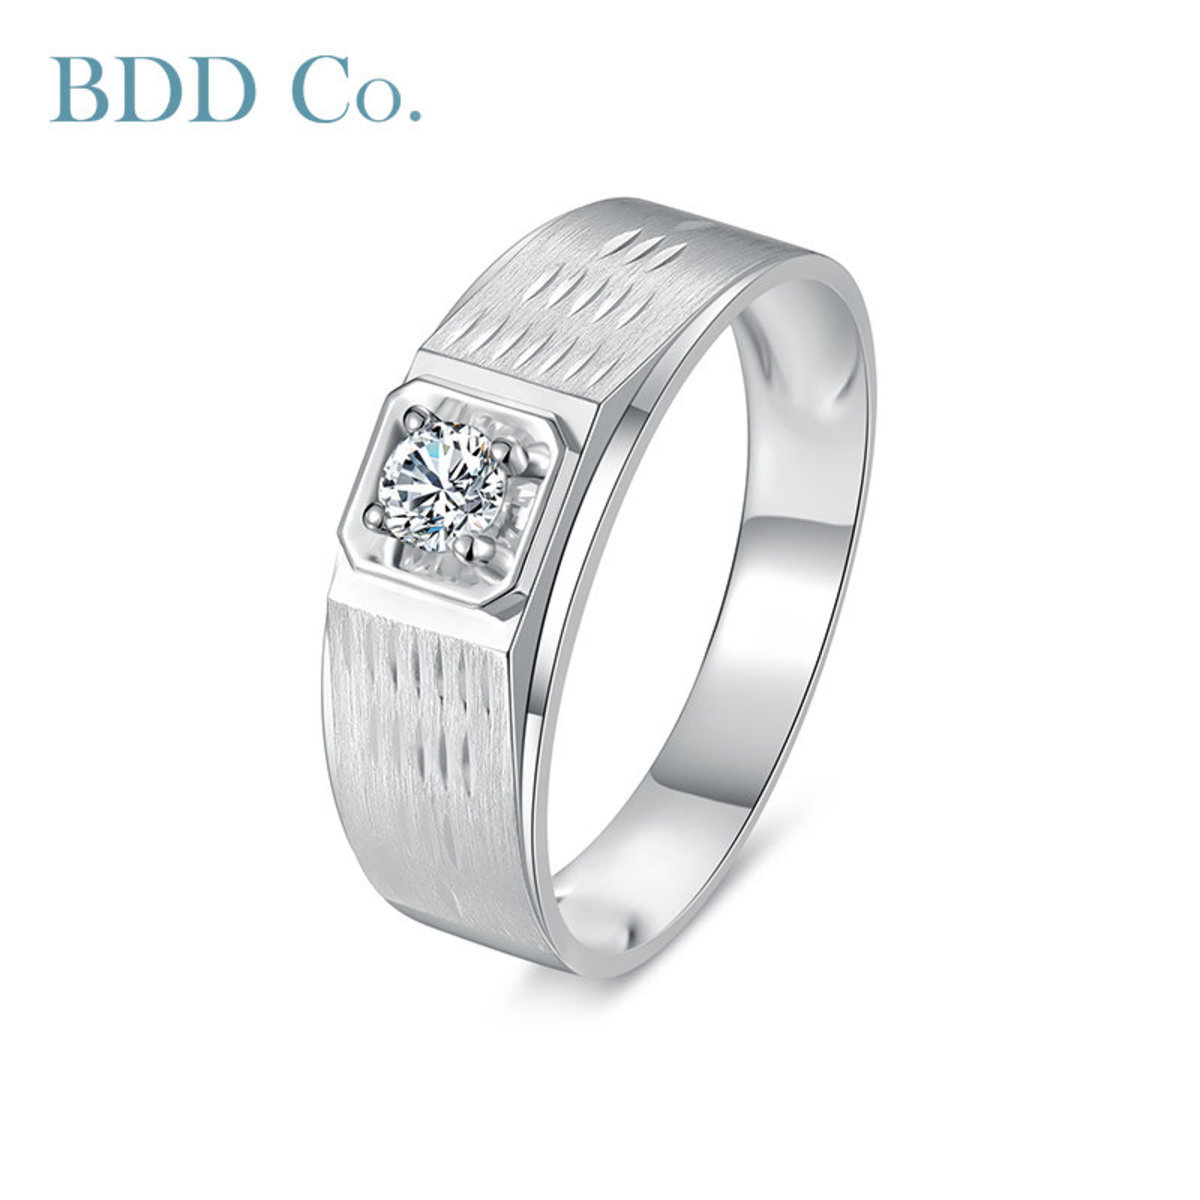 18k White Gold Luxe Wide Band Diamond Ring (0.20 ct. tw.)